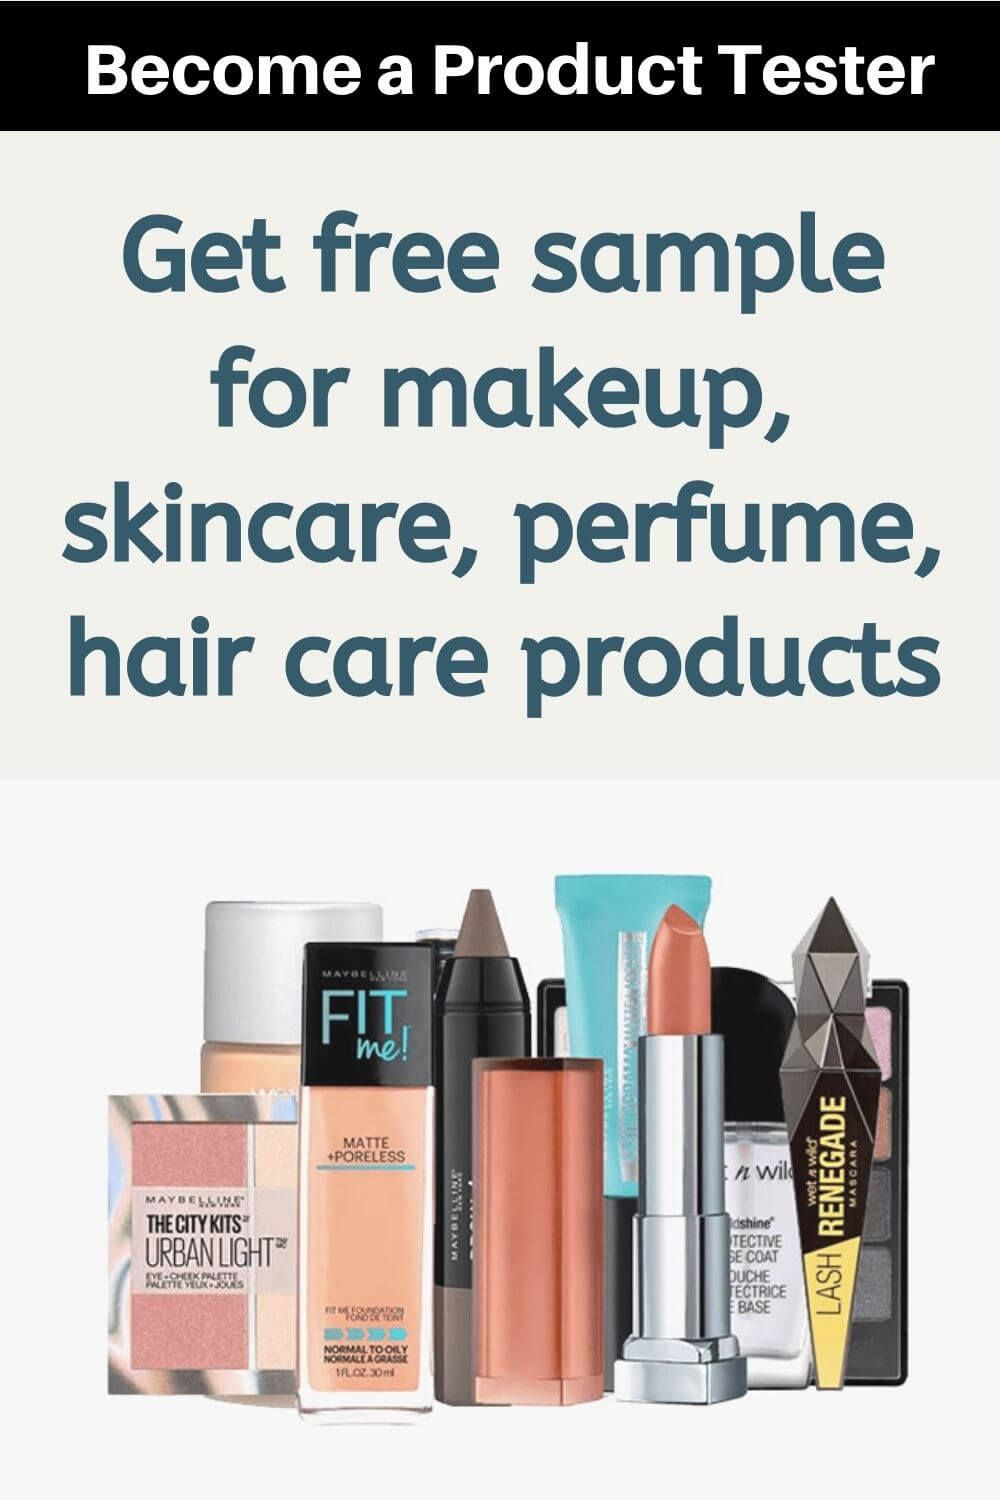 Free Beauty Samples Get Free Sample Makeup Skincare Perfume Hair Care Products For Revi In 2020 Free Beauty Samples Mail Free Makeup Samples Free Beauty Samples